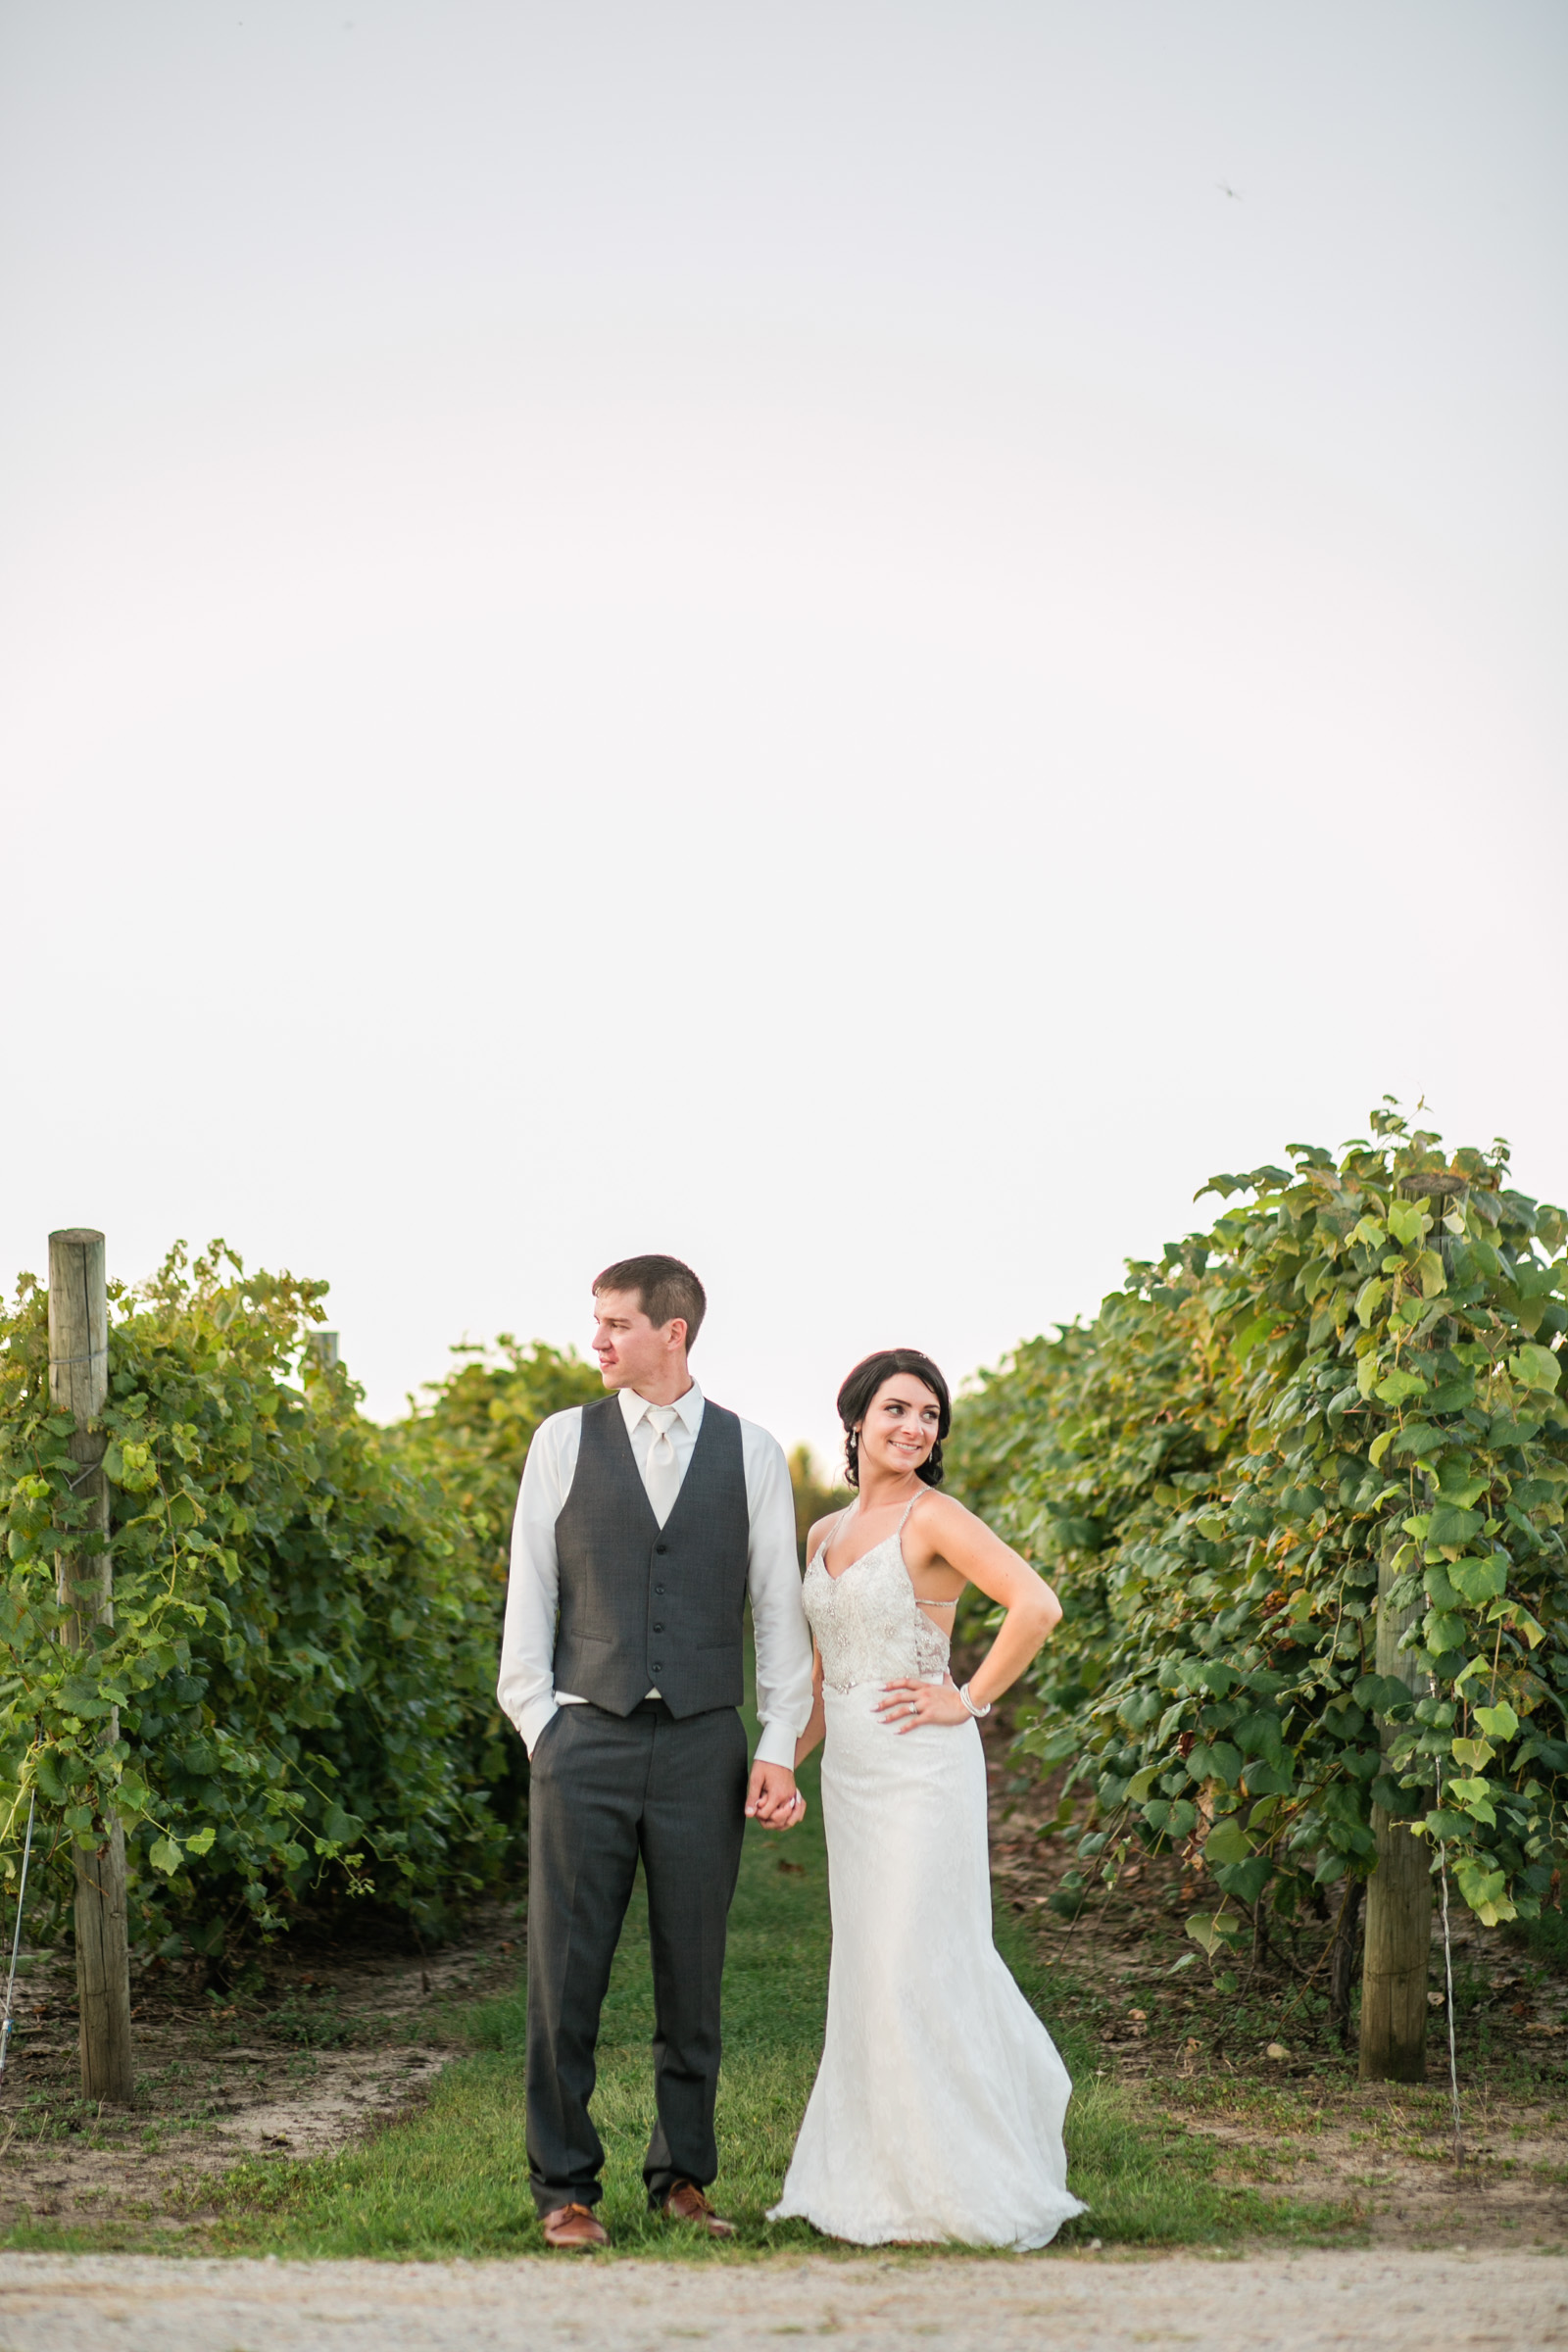 outside wedding pictures winery iowa Des MOines